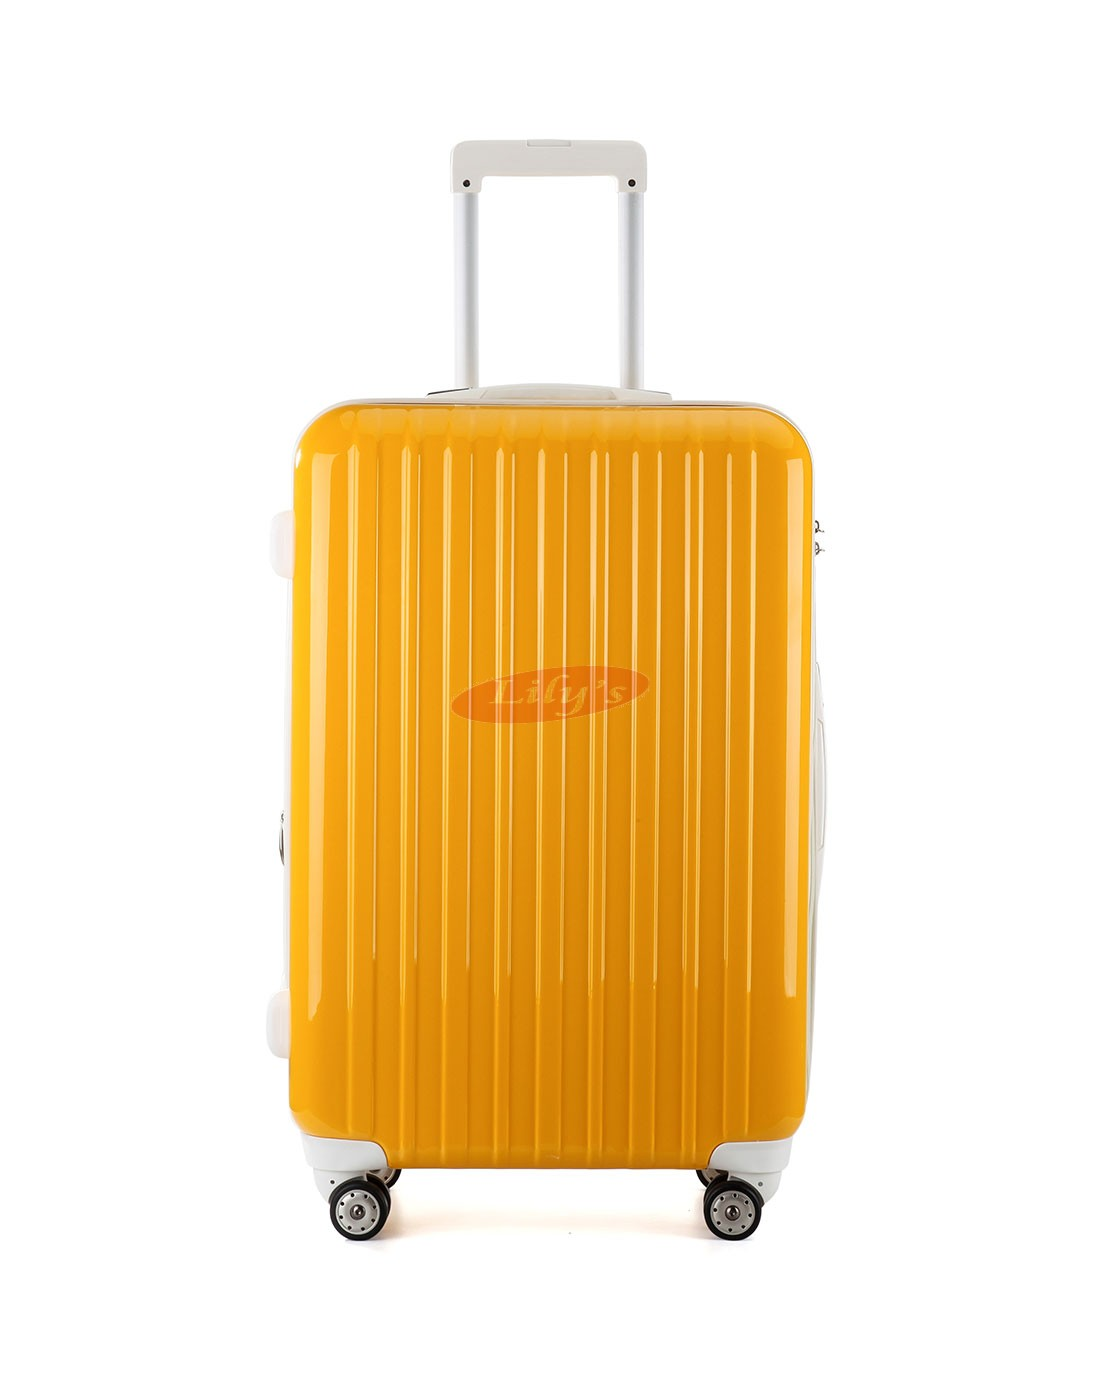 """AIRCROSS 3PC Set Luggage A55 Yellow Hard Case Expandable Trolley Luggage - 20""""24""""&26"""""""